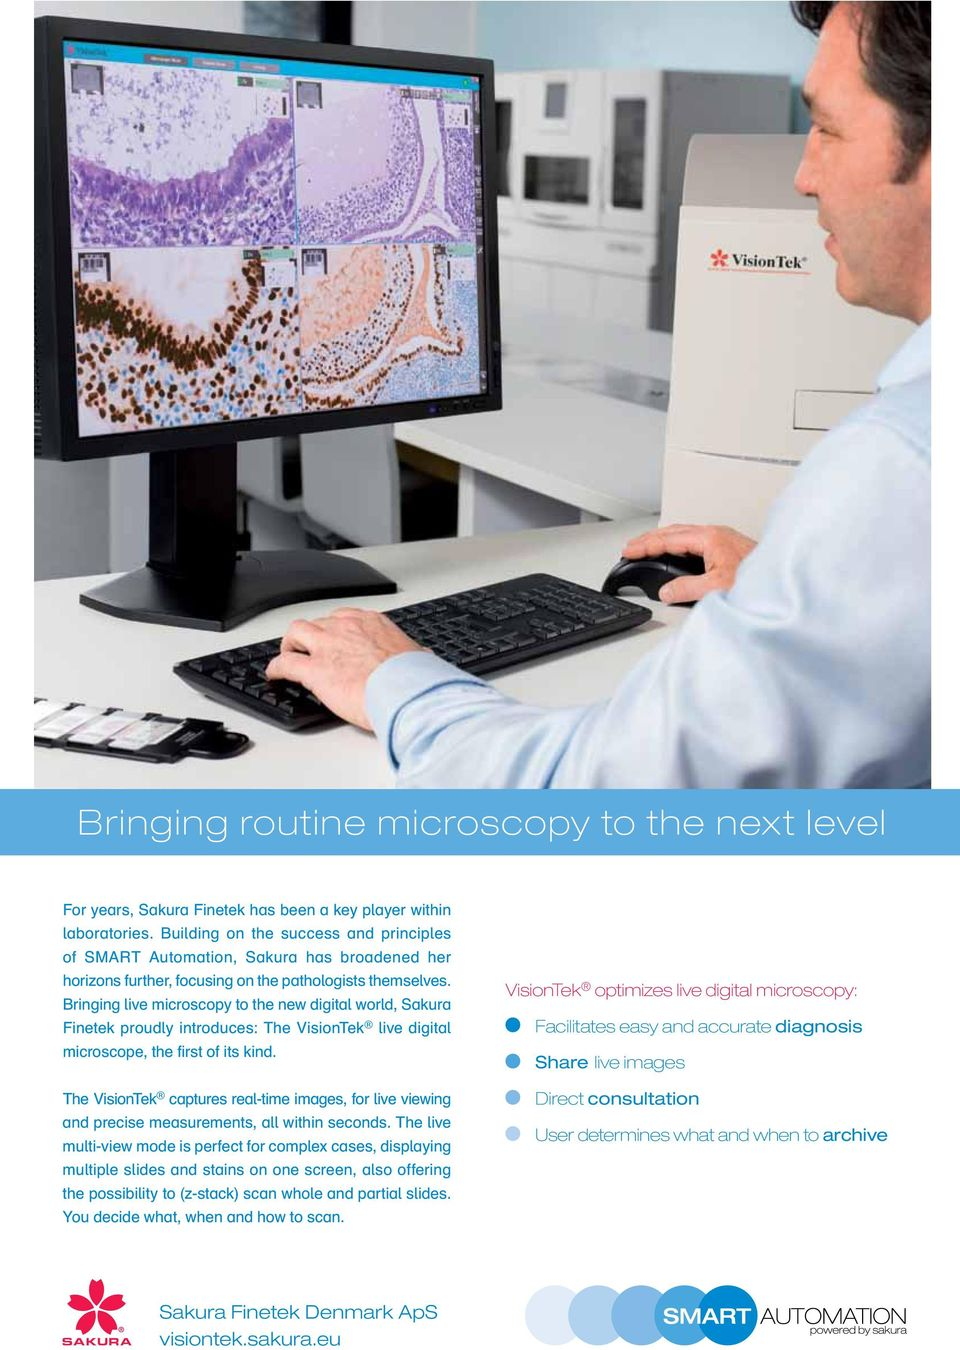 Bringing live microscopy to the new digital world, Sakura Finetek proudly introduces: The VisionTek live digital microscope, the first of its kind.